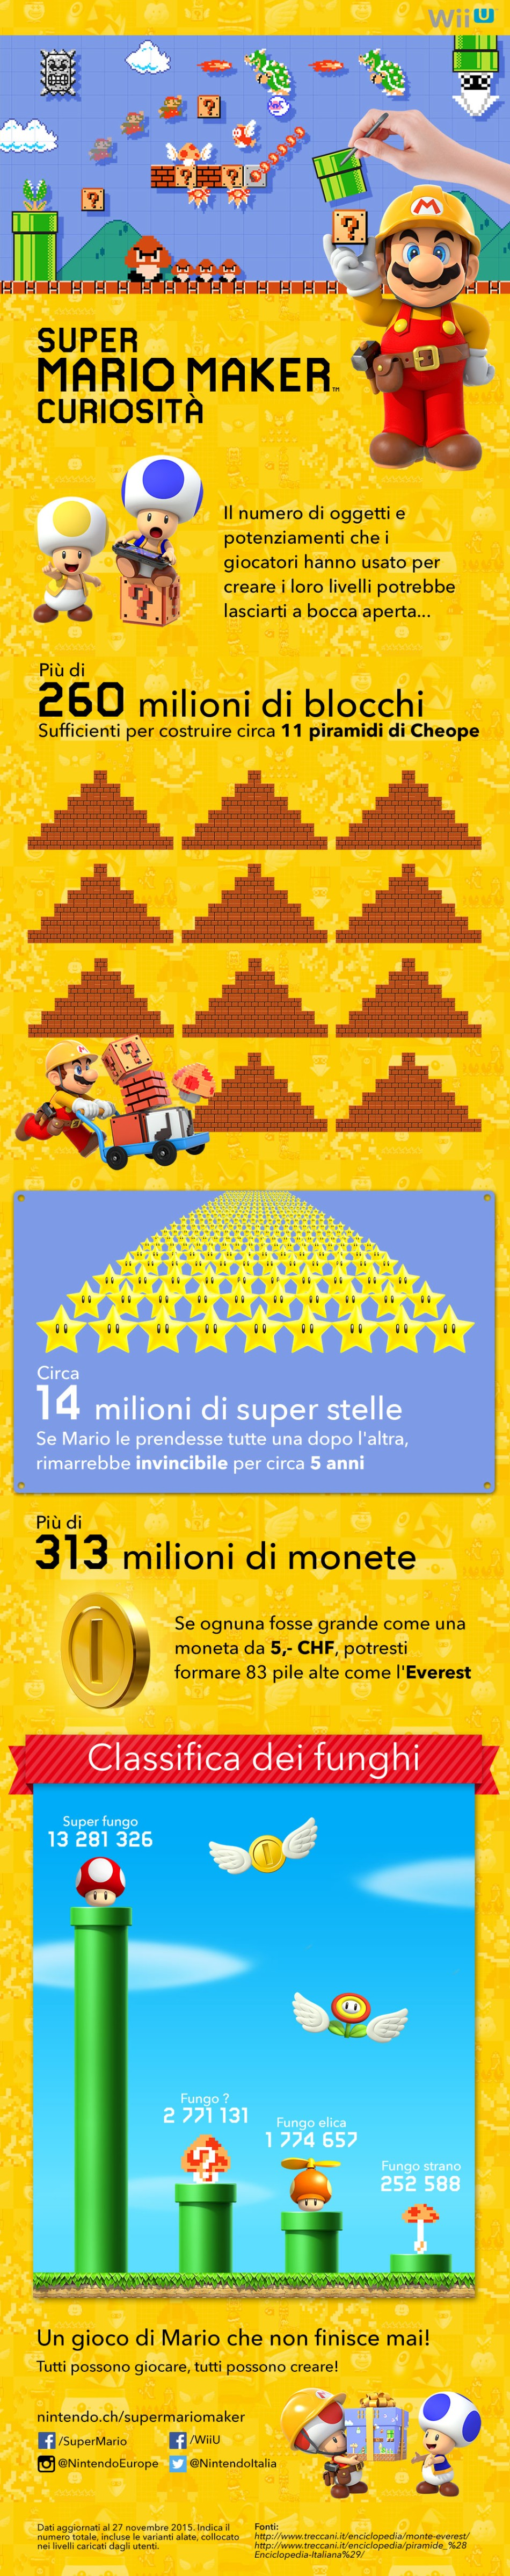 Infographic_WiiU_SuperMarioMaker_itCH.jpg